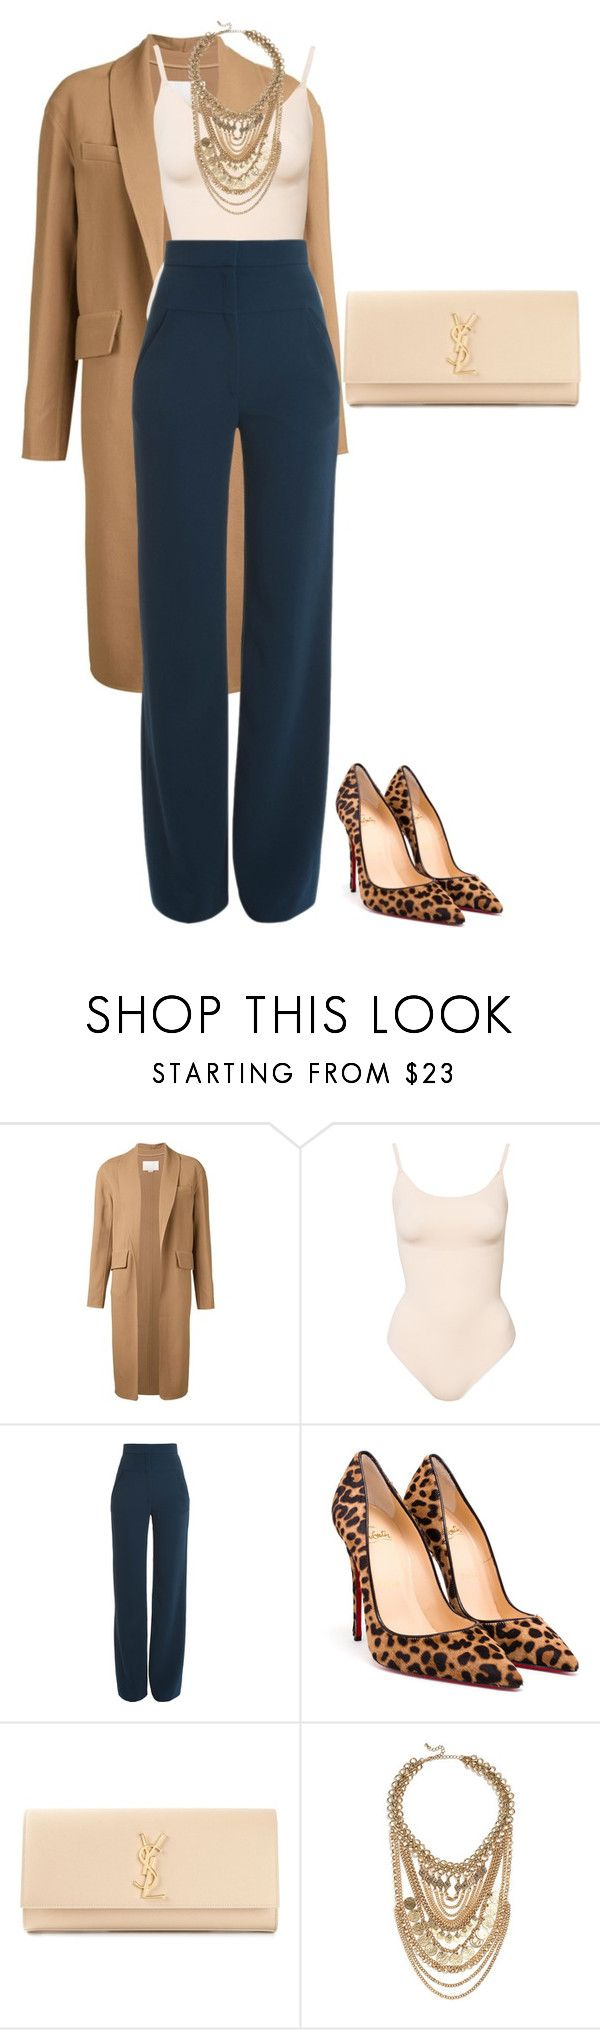 Untitled #230 by amoney-1 ❤ liked on Polyvore featuring Alexander Wang, Cushnie Et Ochs, Christian Louboutin, Yves Saint Laurent and LULUS